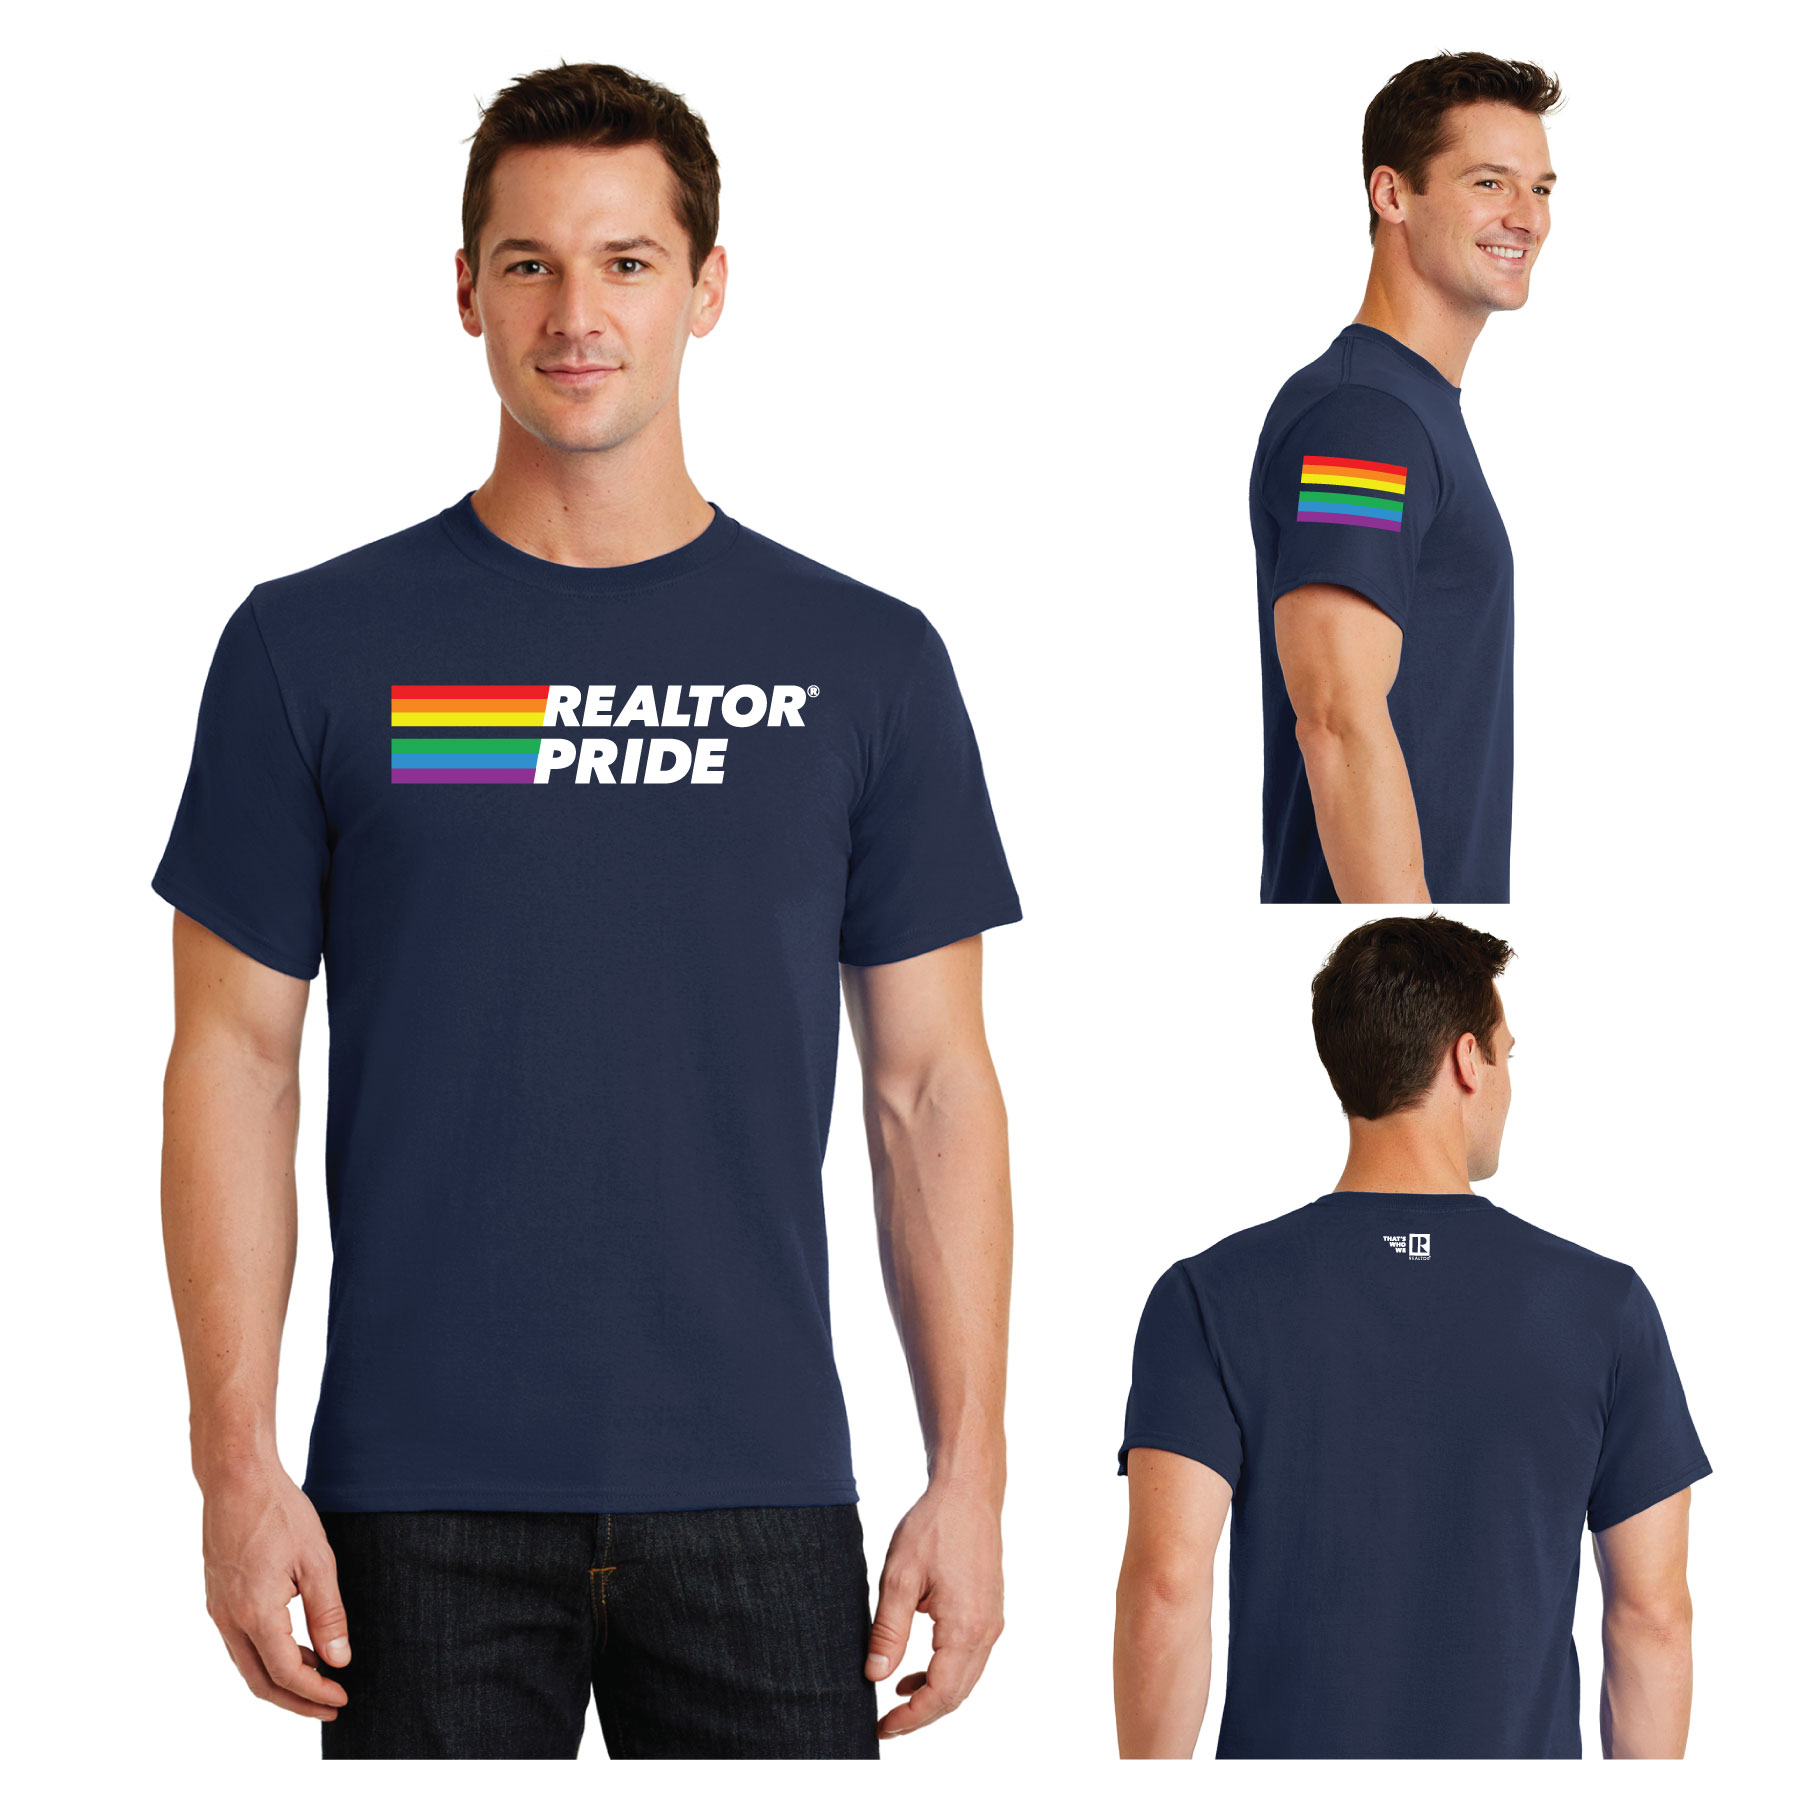 REALTOR® Pride Tee Shirt Prides,LGBTQ+,Lesbian,Gay,Bisexual,Transexual,Transgender,Tees,Shirts,Navy,Rainbows,Flags,Shirts,Queers,Pansexuals